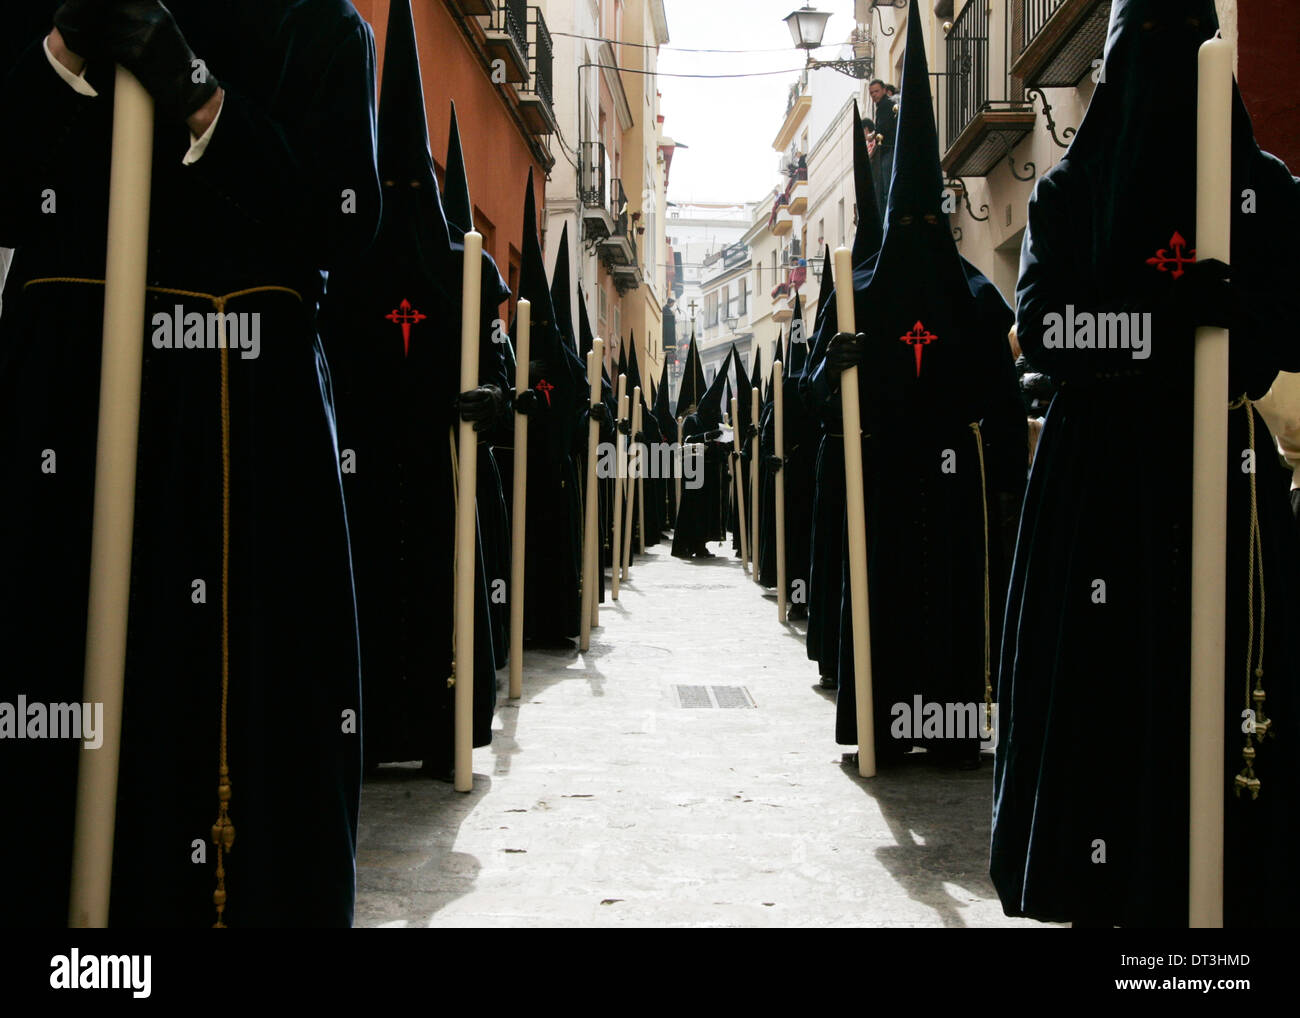 Penitents take part in the La Carretera brotherhood procession during the Holy Week in Sevilla - Stock Image